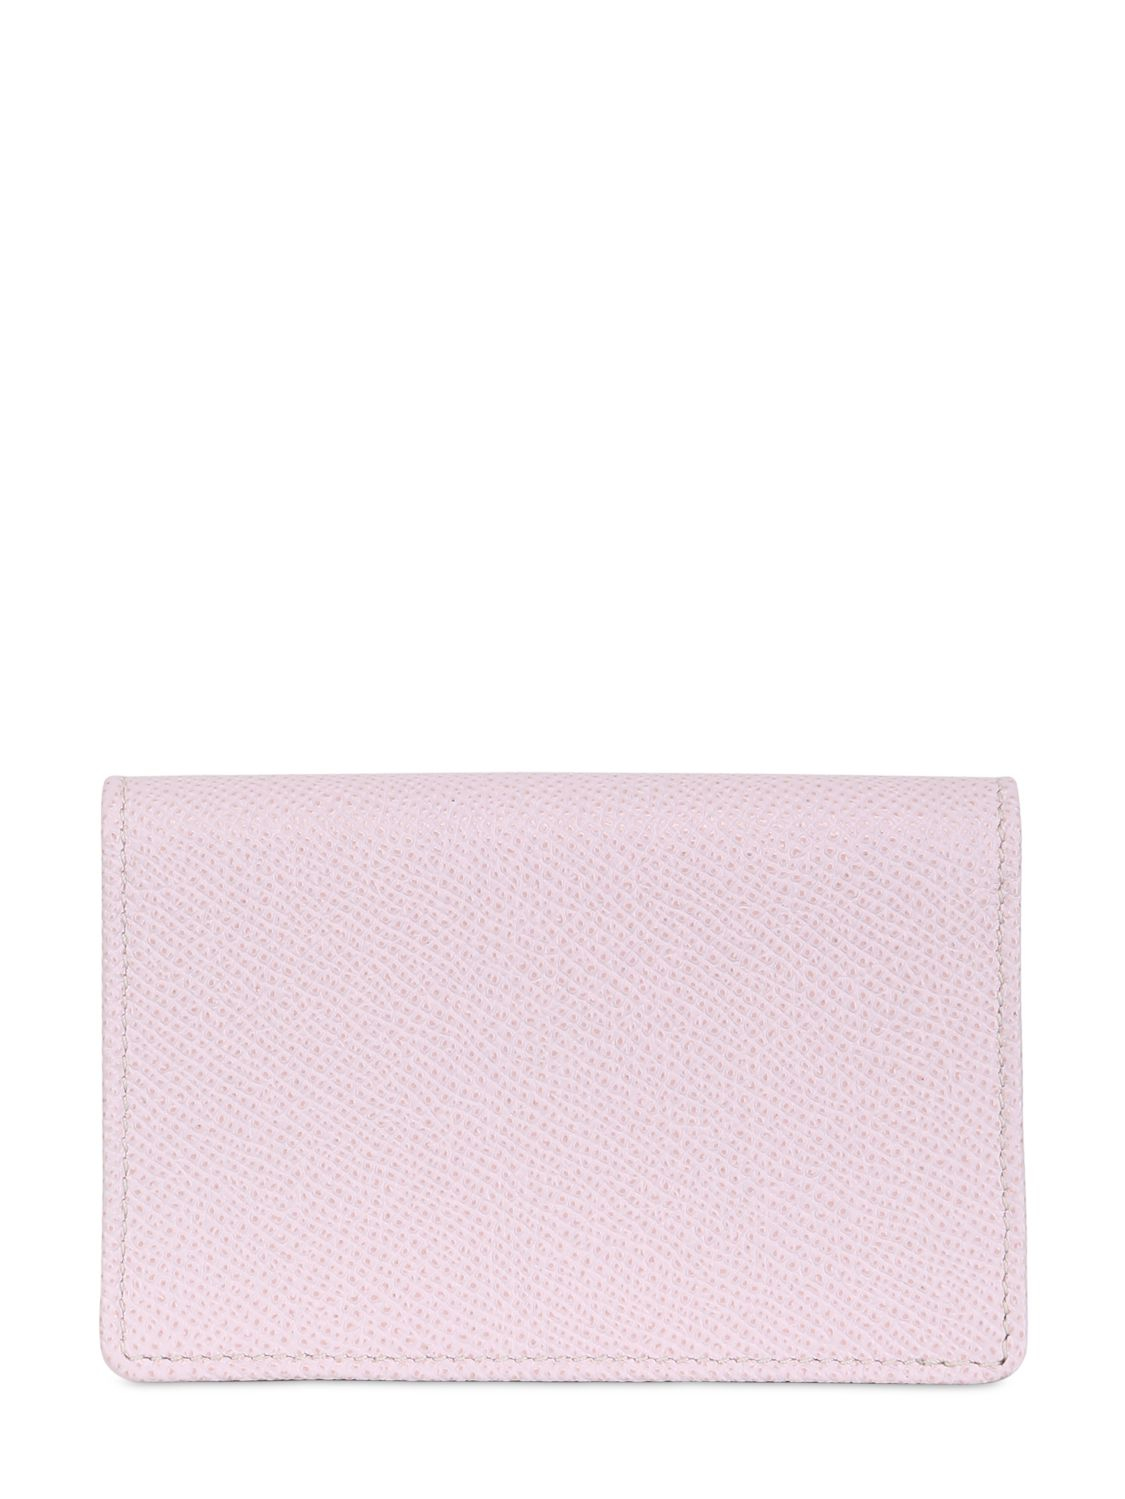 Lyst - Tod\'S Leather Business Card Holder in Pink for Men